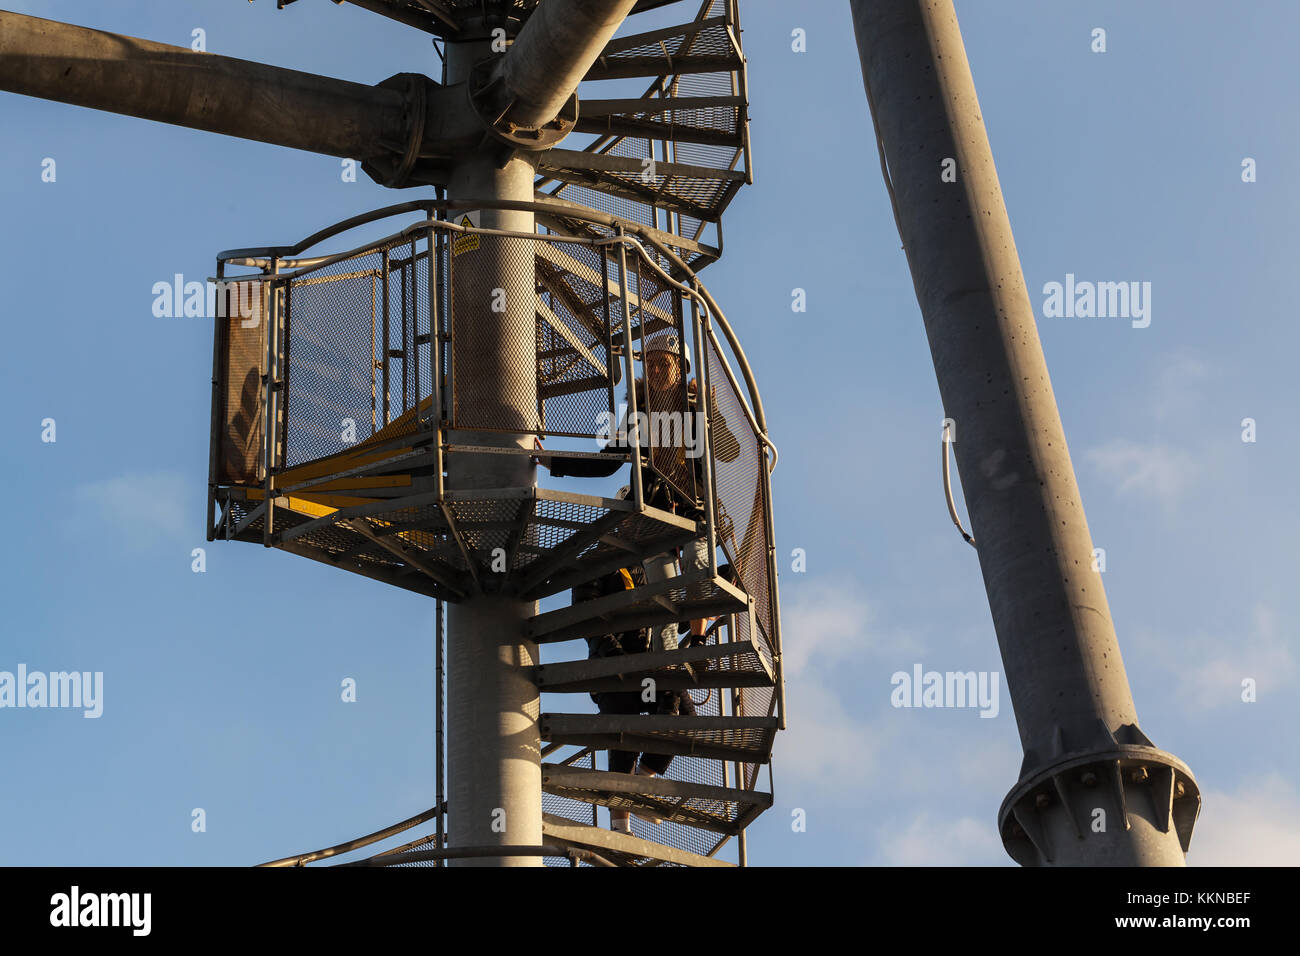 4 man zip wire wales earth s core diagram stock photos and images alamy